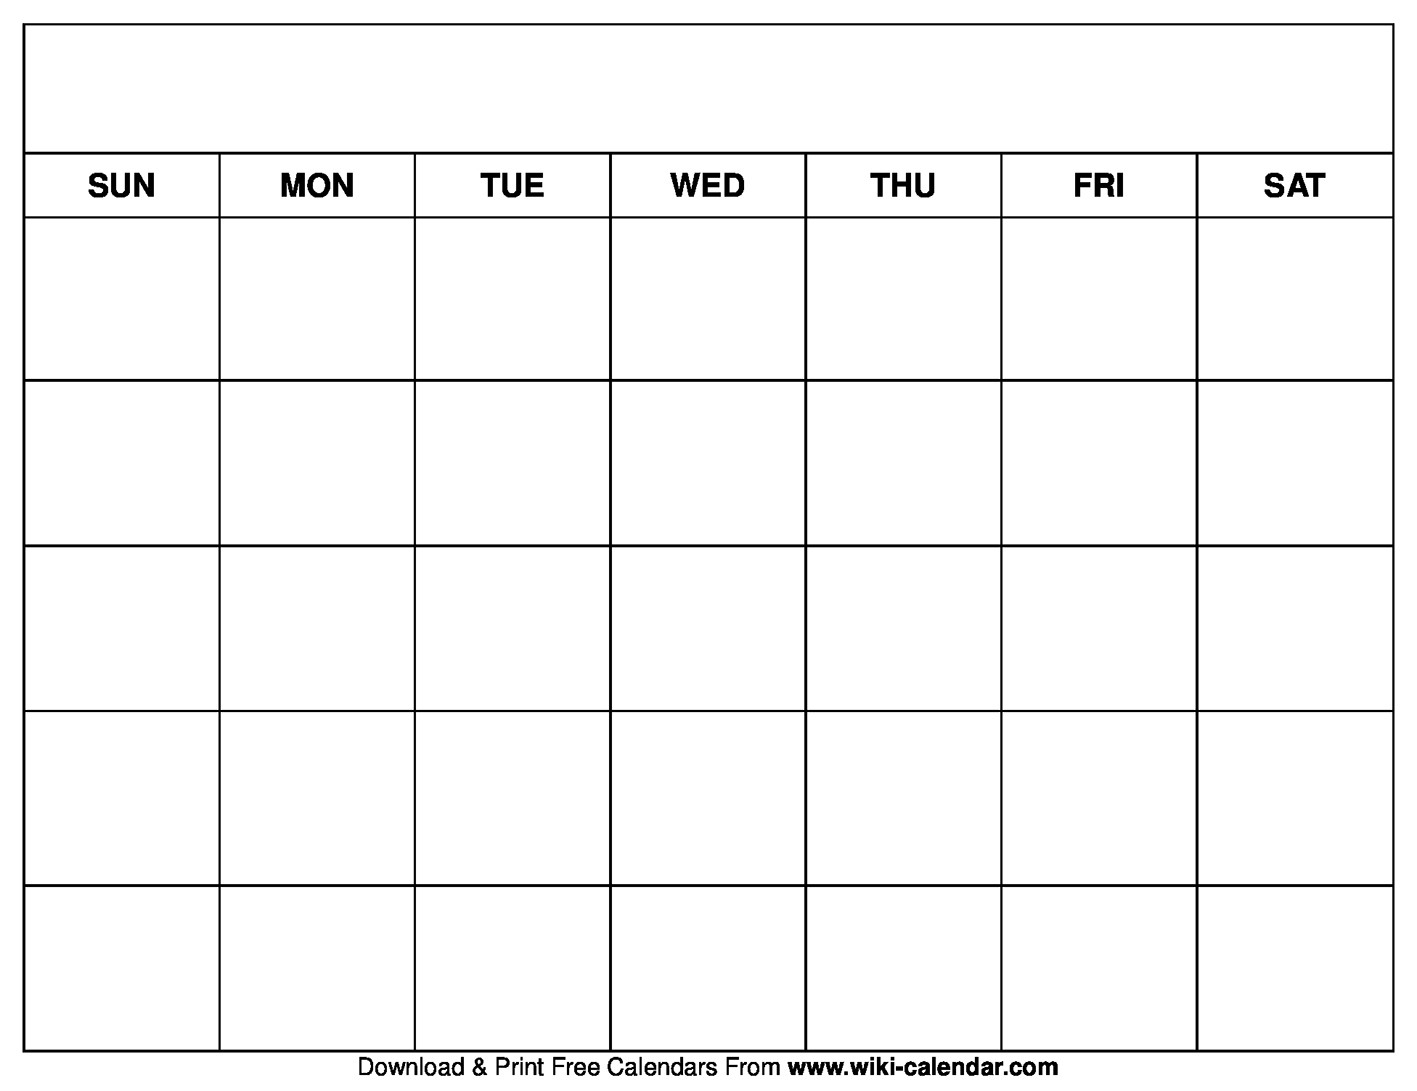 Blankndar Printable Template Monthly Templates Free Pdf-Calendar Blank With Numbers And Printable